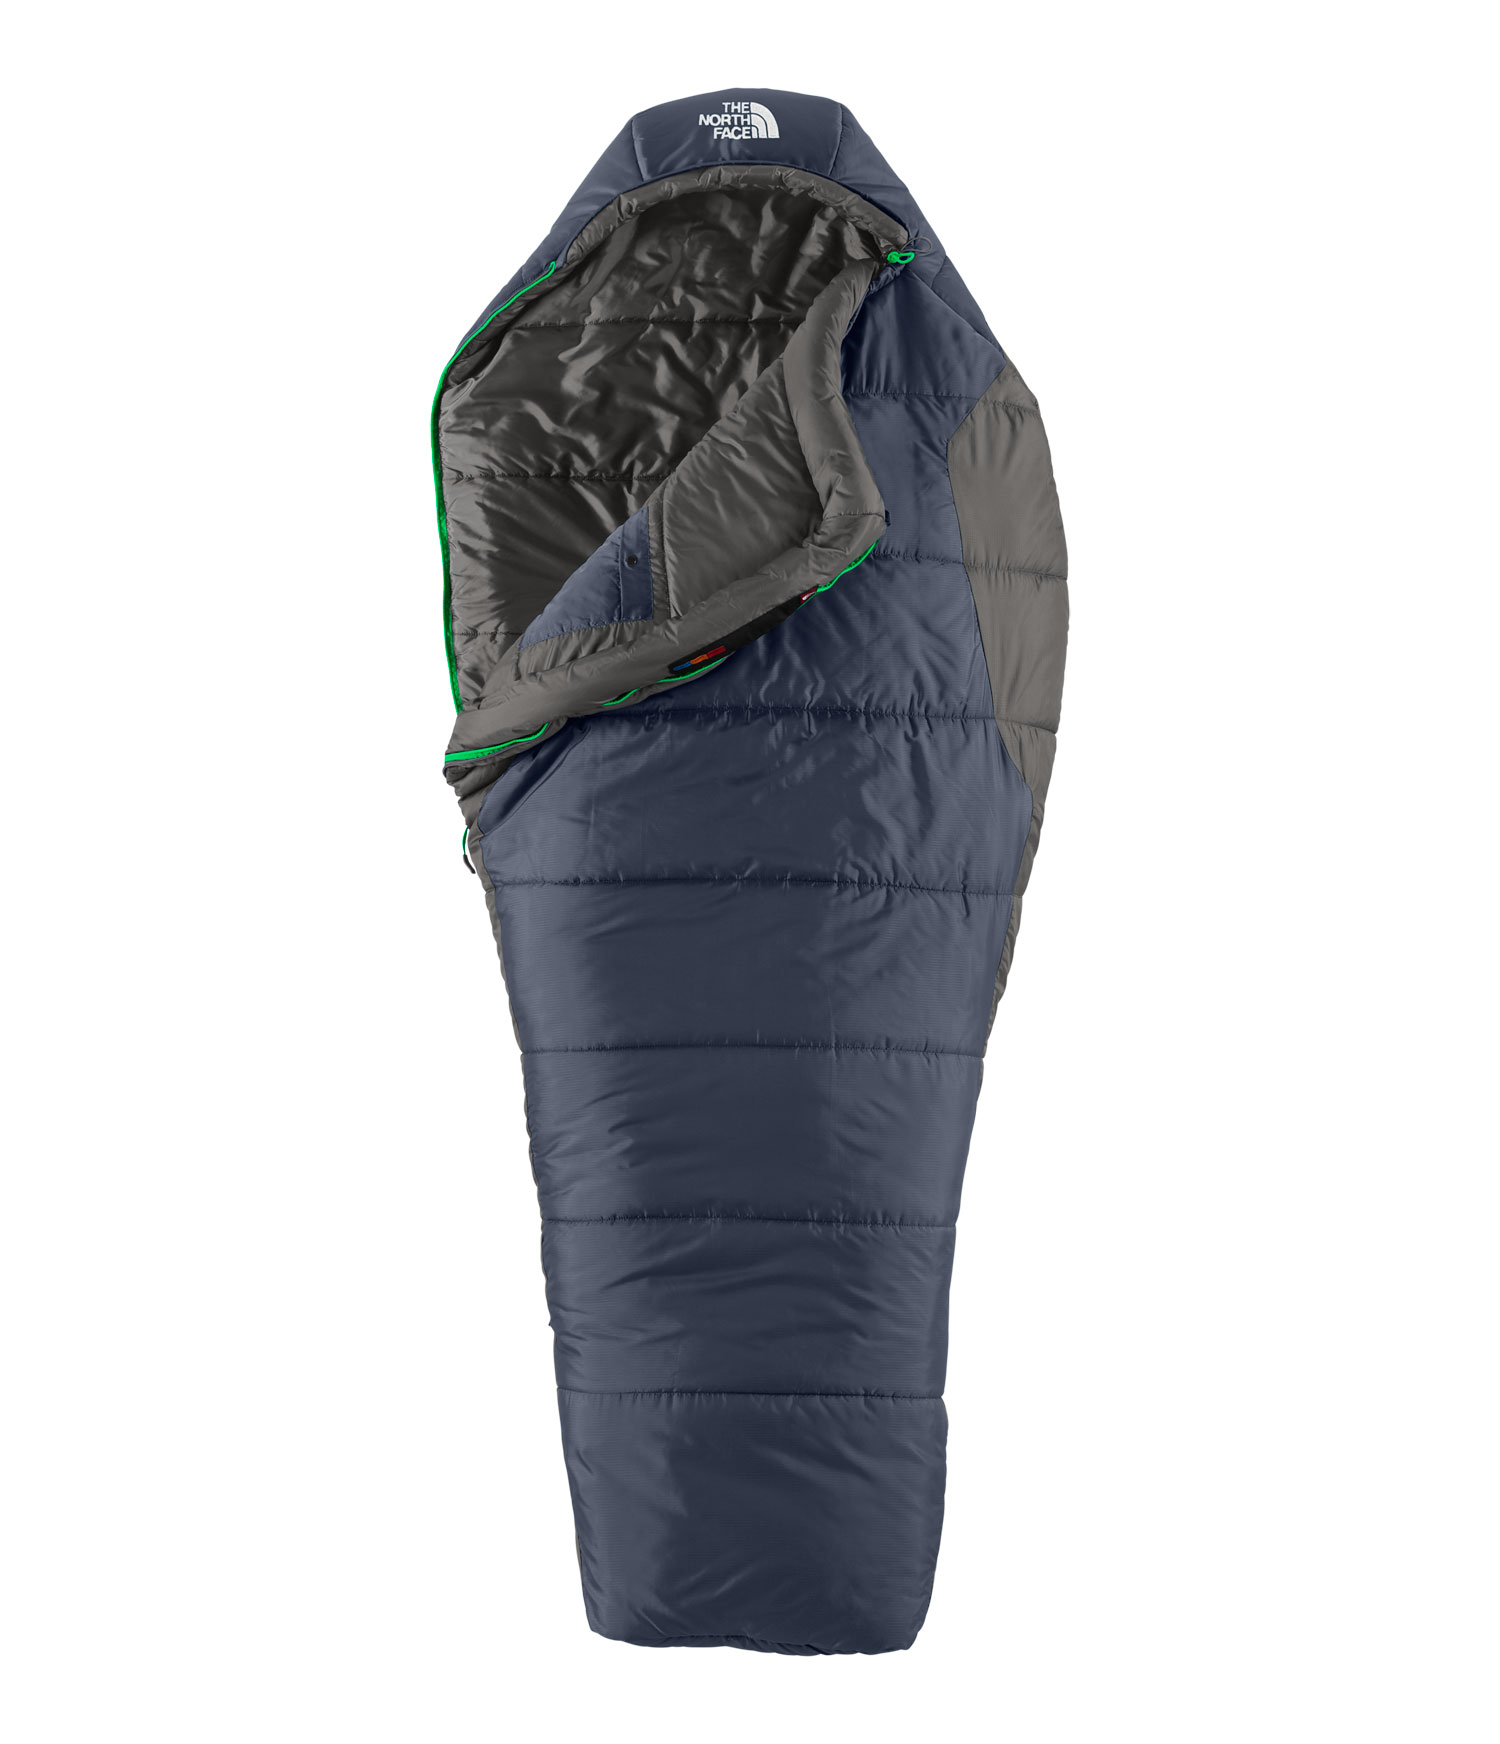 "Camp and Hike Heatseeker insulation in a two-plus-season, forty-degree campground favorite.Key Features of The North Face Aleutian 3S Bx RRH 3 Season Long Sleeping Bag: Temp Rating: 20 degrees Fahrenheit Weight: 3lbs 6oz Stuffsack size: 8"" x 6.3"" x 20.7"" Heatseeker insulation Soft ripstop nylon shell Internal watch pocket Roll-top stuffsack Tested to EN 13539 - $88.95"